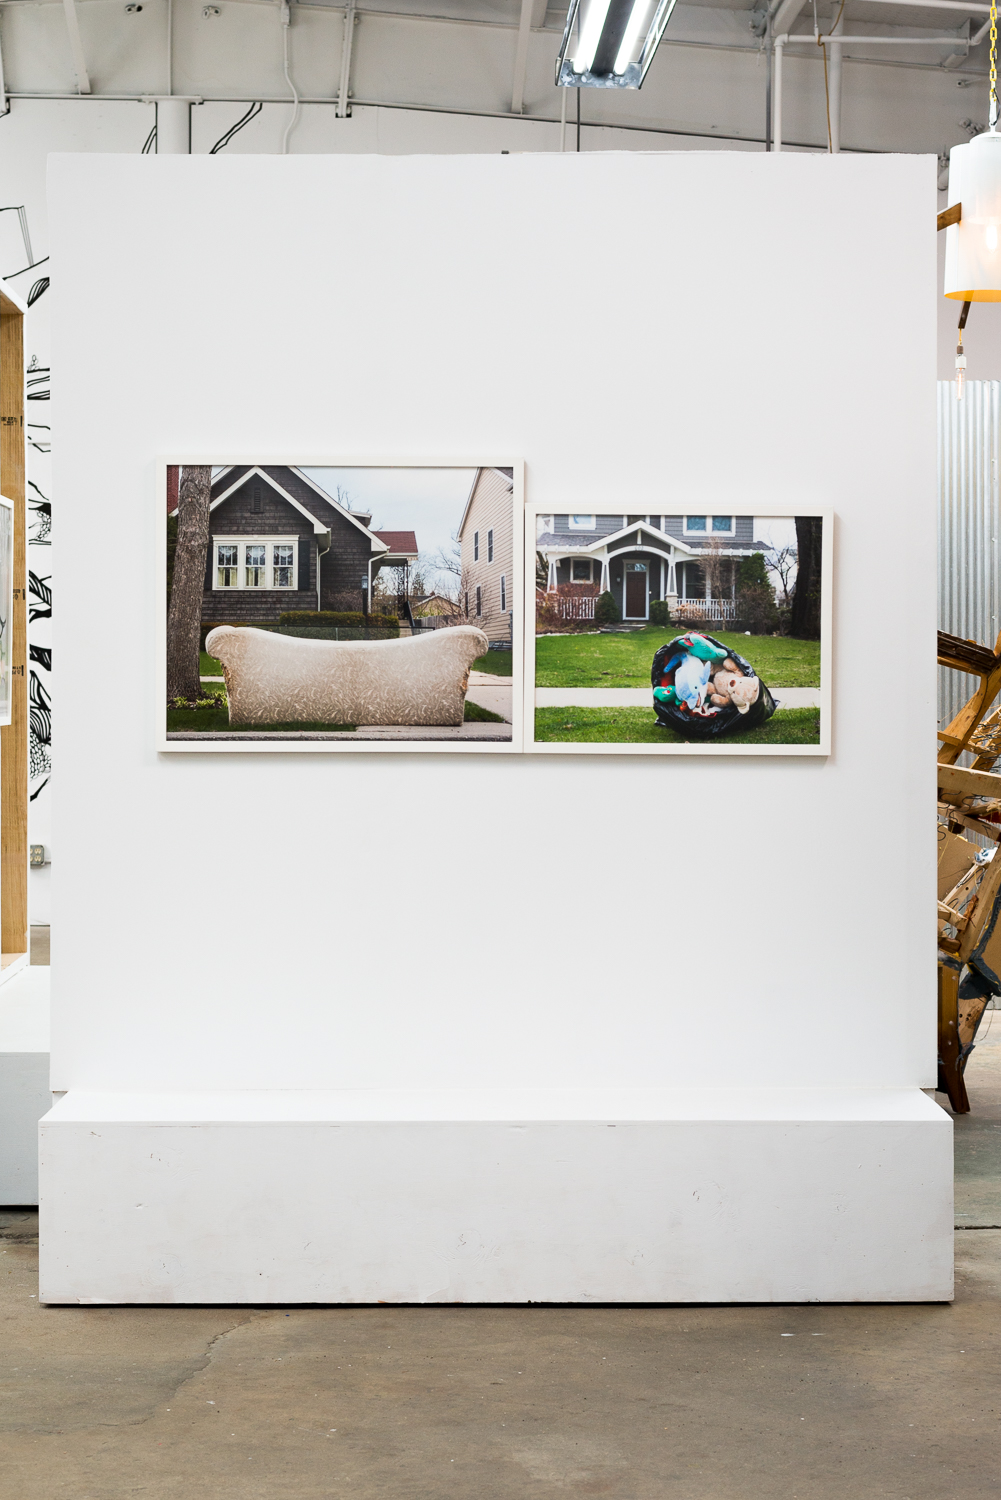 Gray Couch 2014, 24x30 framed Archival Pigment Print. Stuffed Animals, 2014, 20x25 framed Archival Pigment Print.